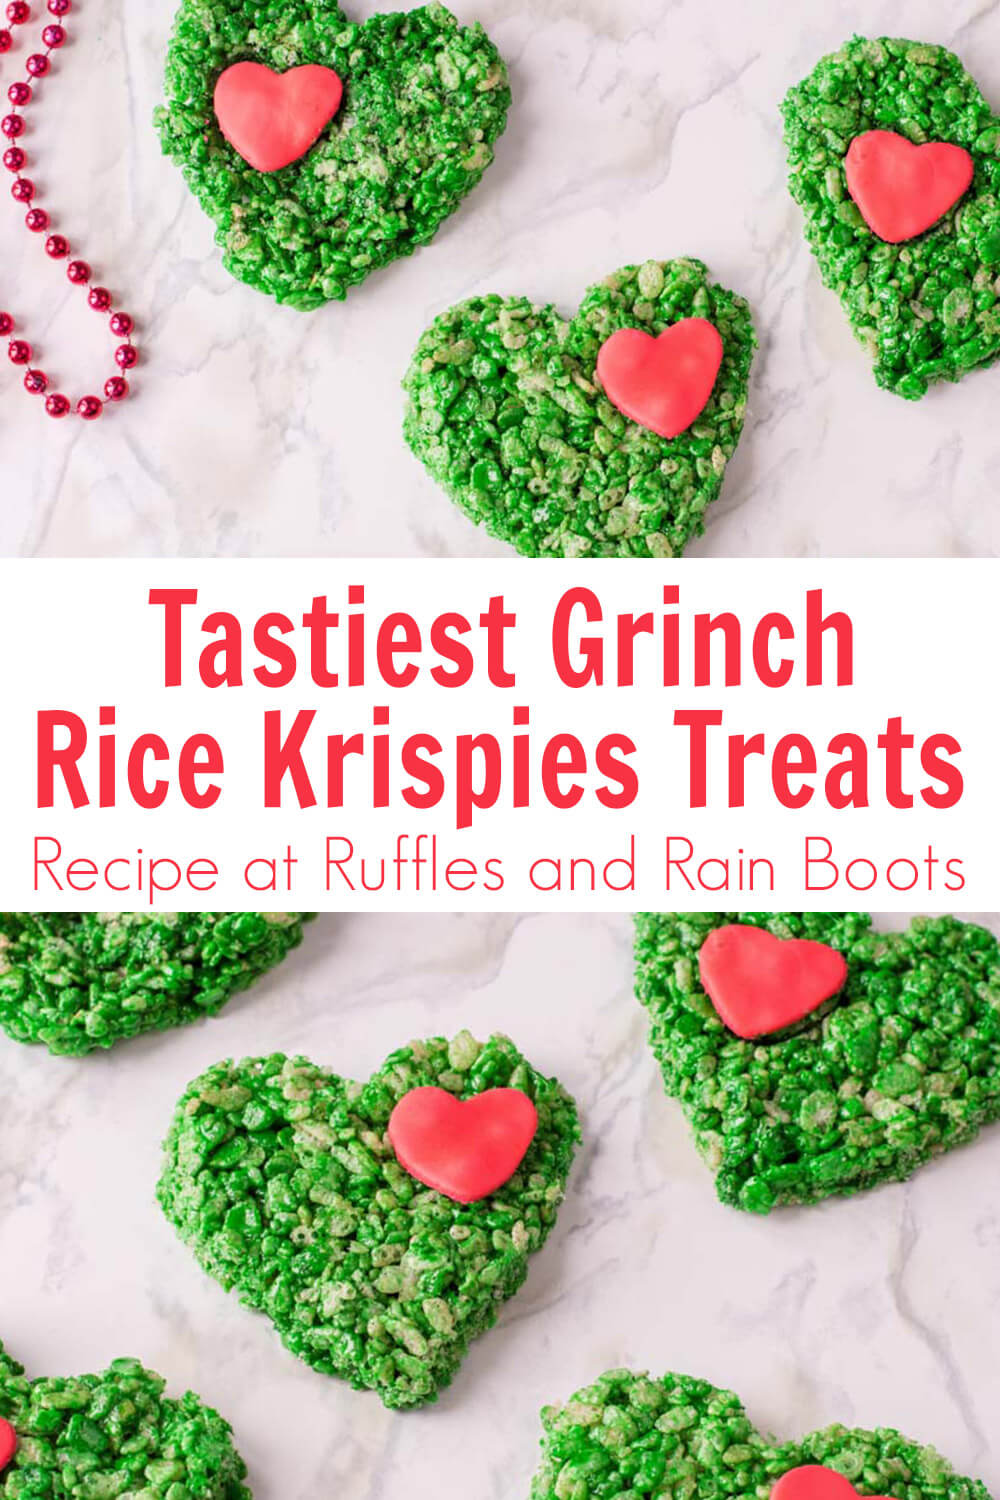 photo collage of grinch rice krispies treats with text which reads tastiest grinch rice krispies treats